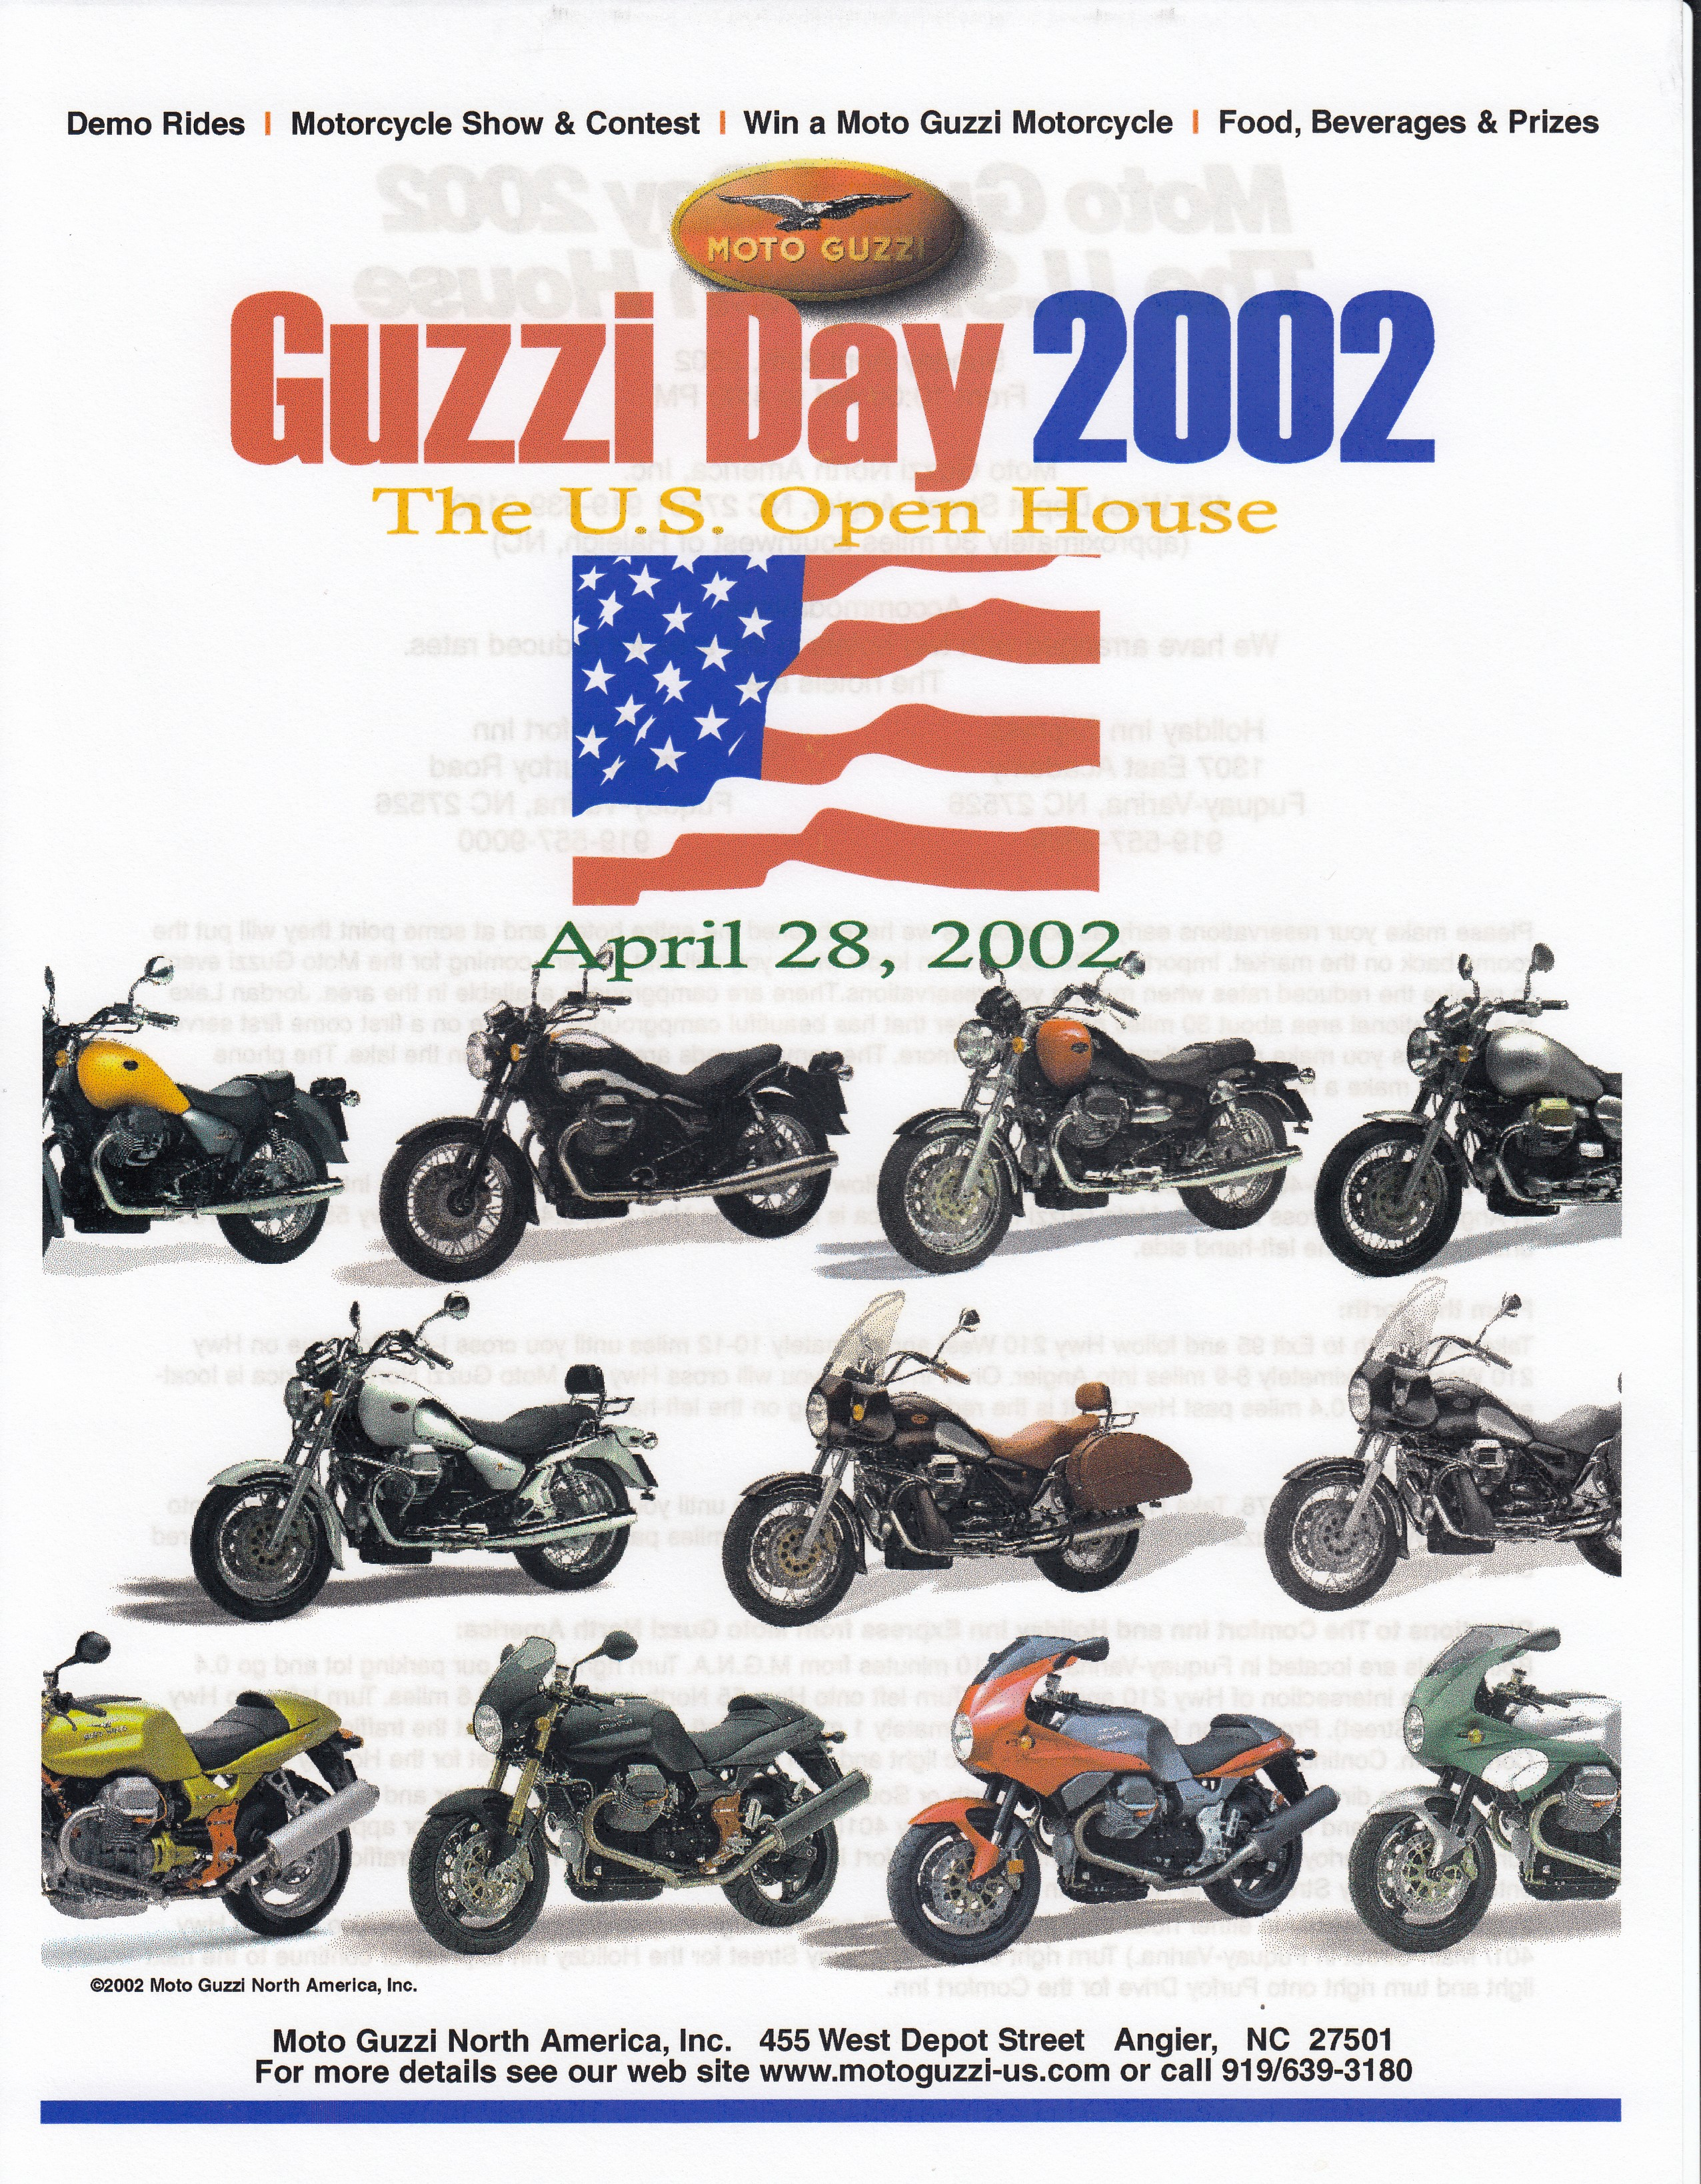 Press release - Moto Guzzi Day 2002